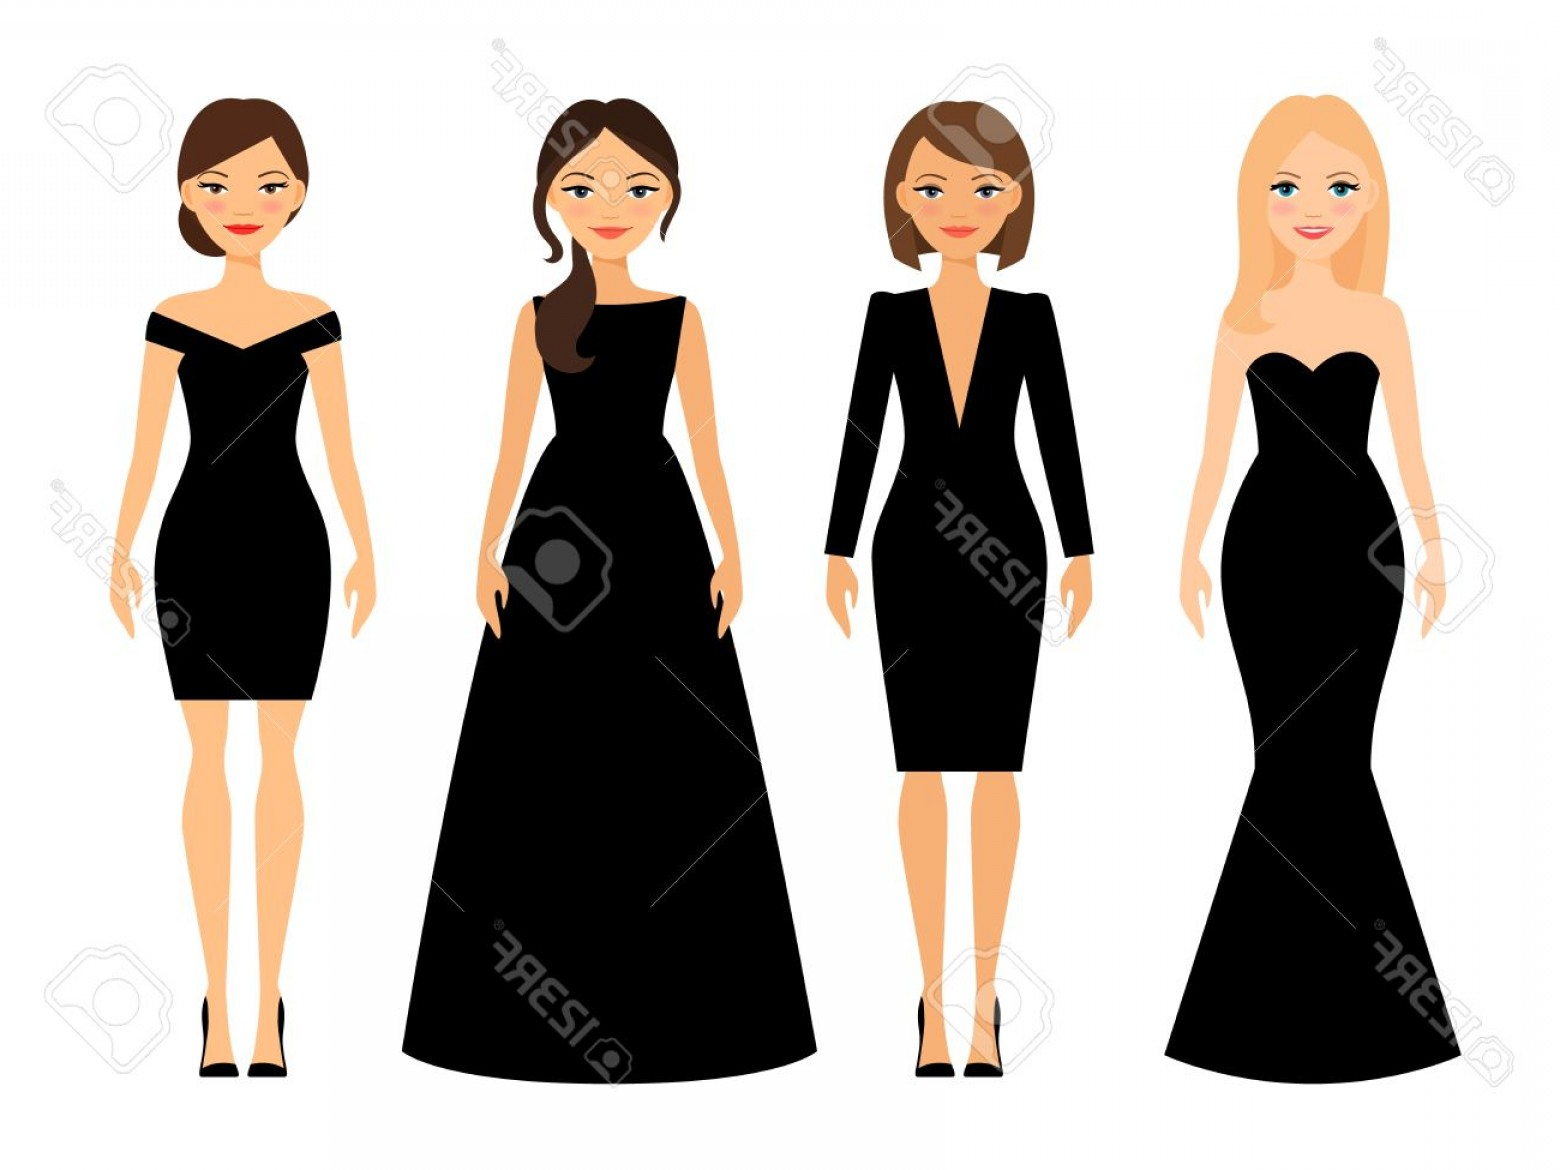 Vector Images Of Black And White Dresses: Photostock Vector Beautiful Women In Different Style Black Dresses Cartoon Characters On White Background Vector Illus